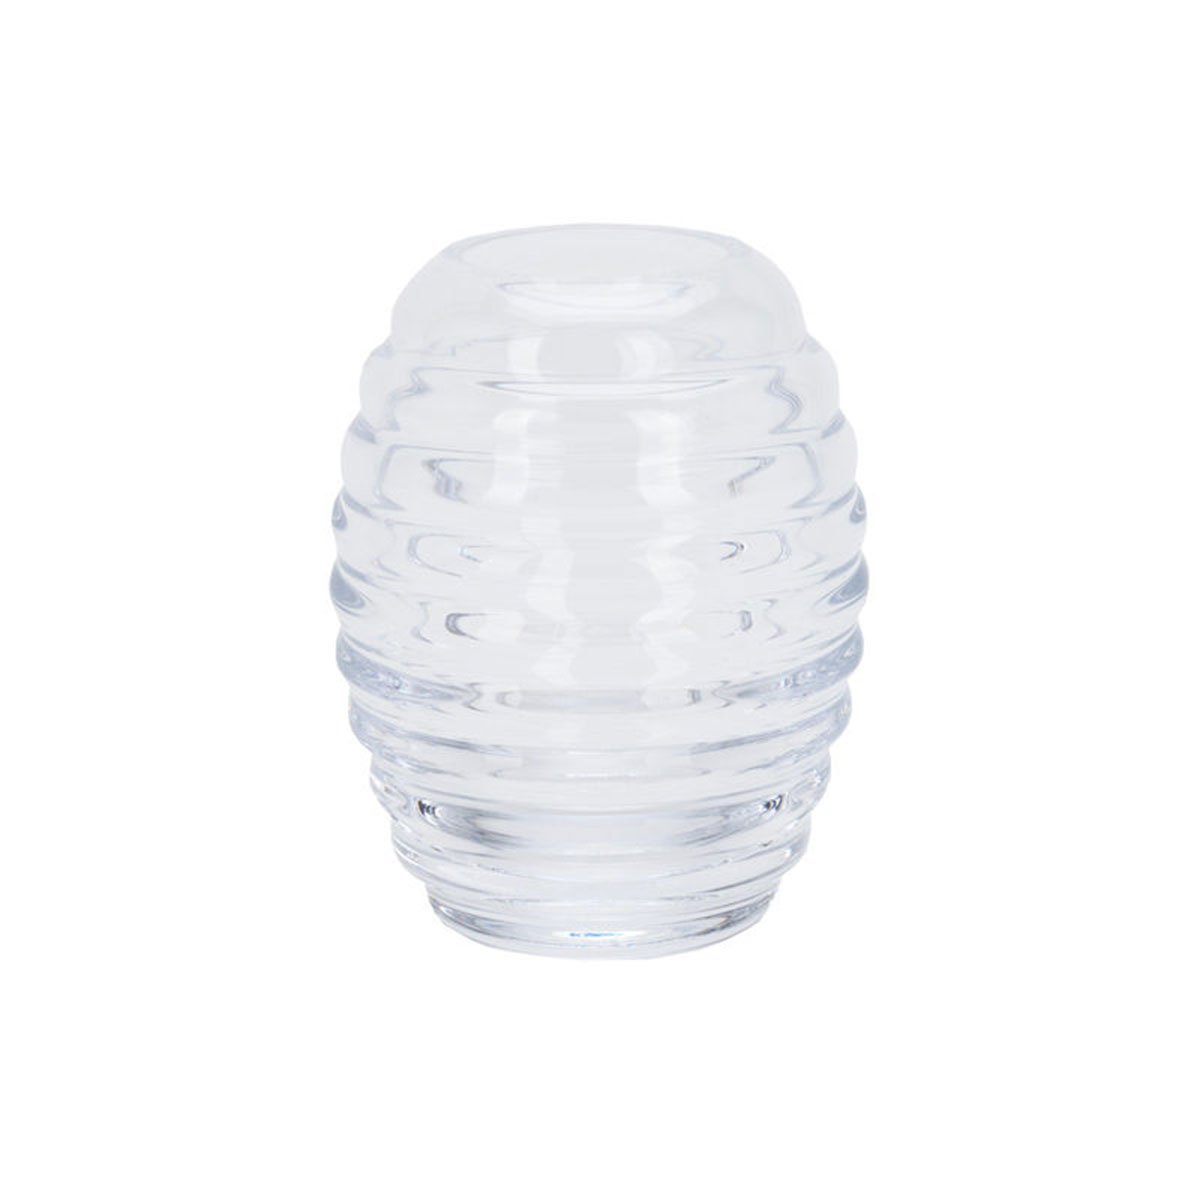 Alessi Replacement Glass for the Honey Pot or Sugar Castor by Alessi